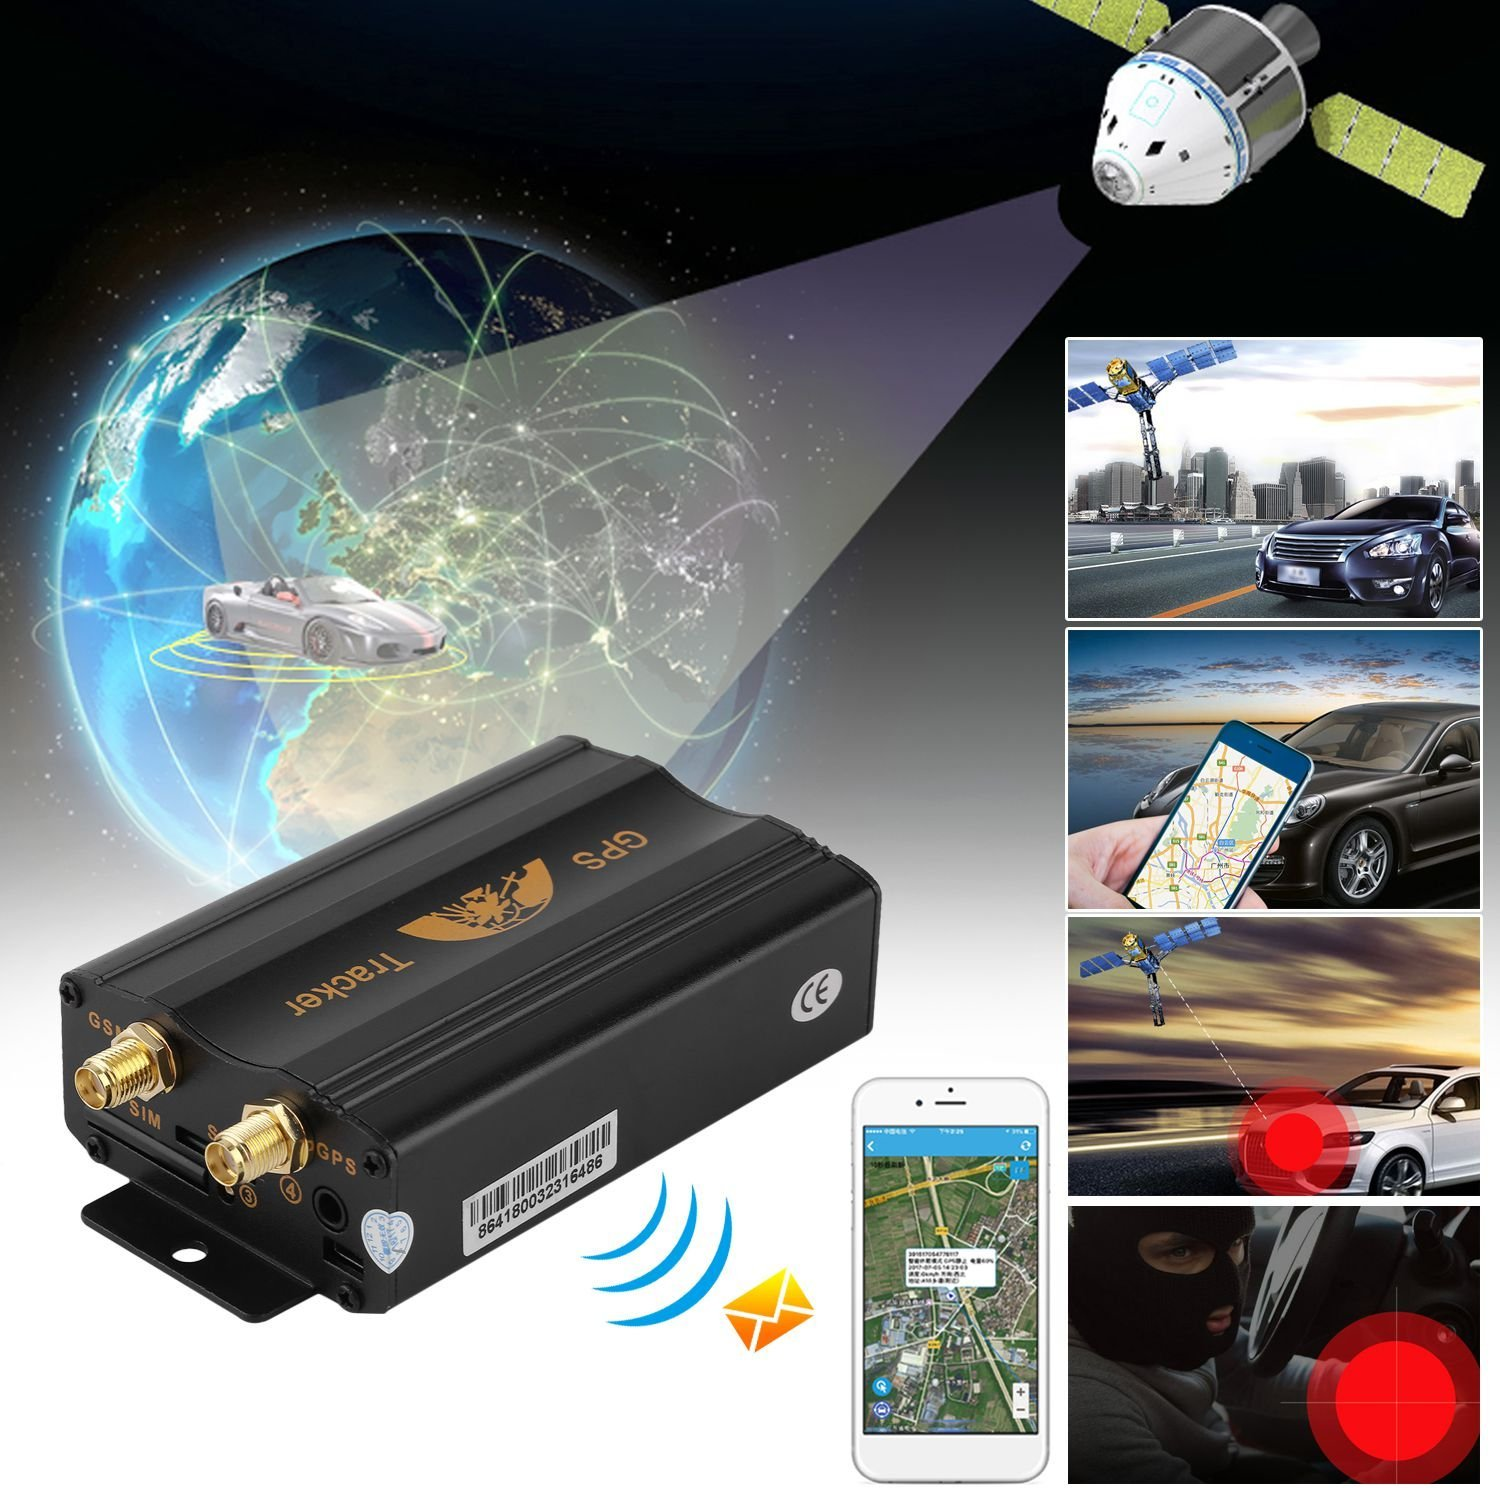 Auto Vehicles Tracking System GPS Tracker Car SMS GPRS Tracking Device 103-A With Aerial Support Both GPS & LBS Auto Tracking System GPS Tracker Car SMS GPRS Tracking Device With Aerial